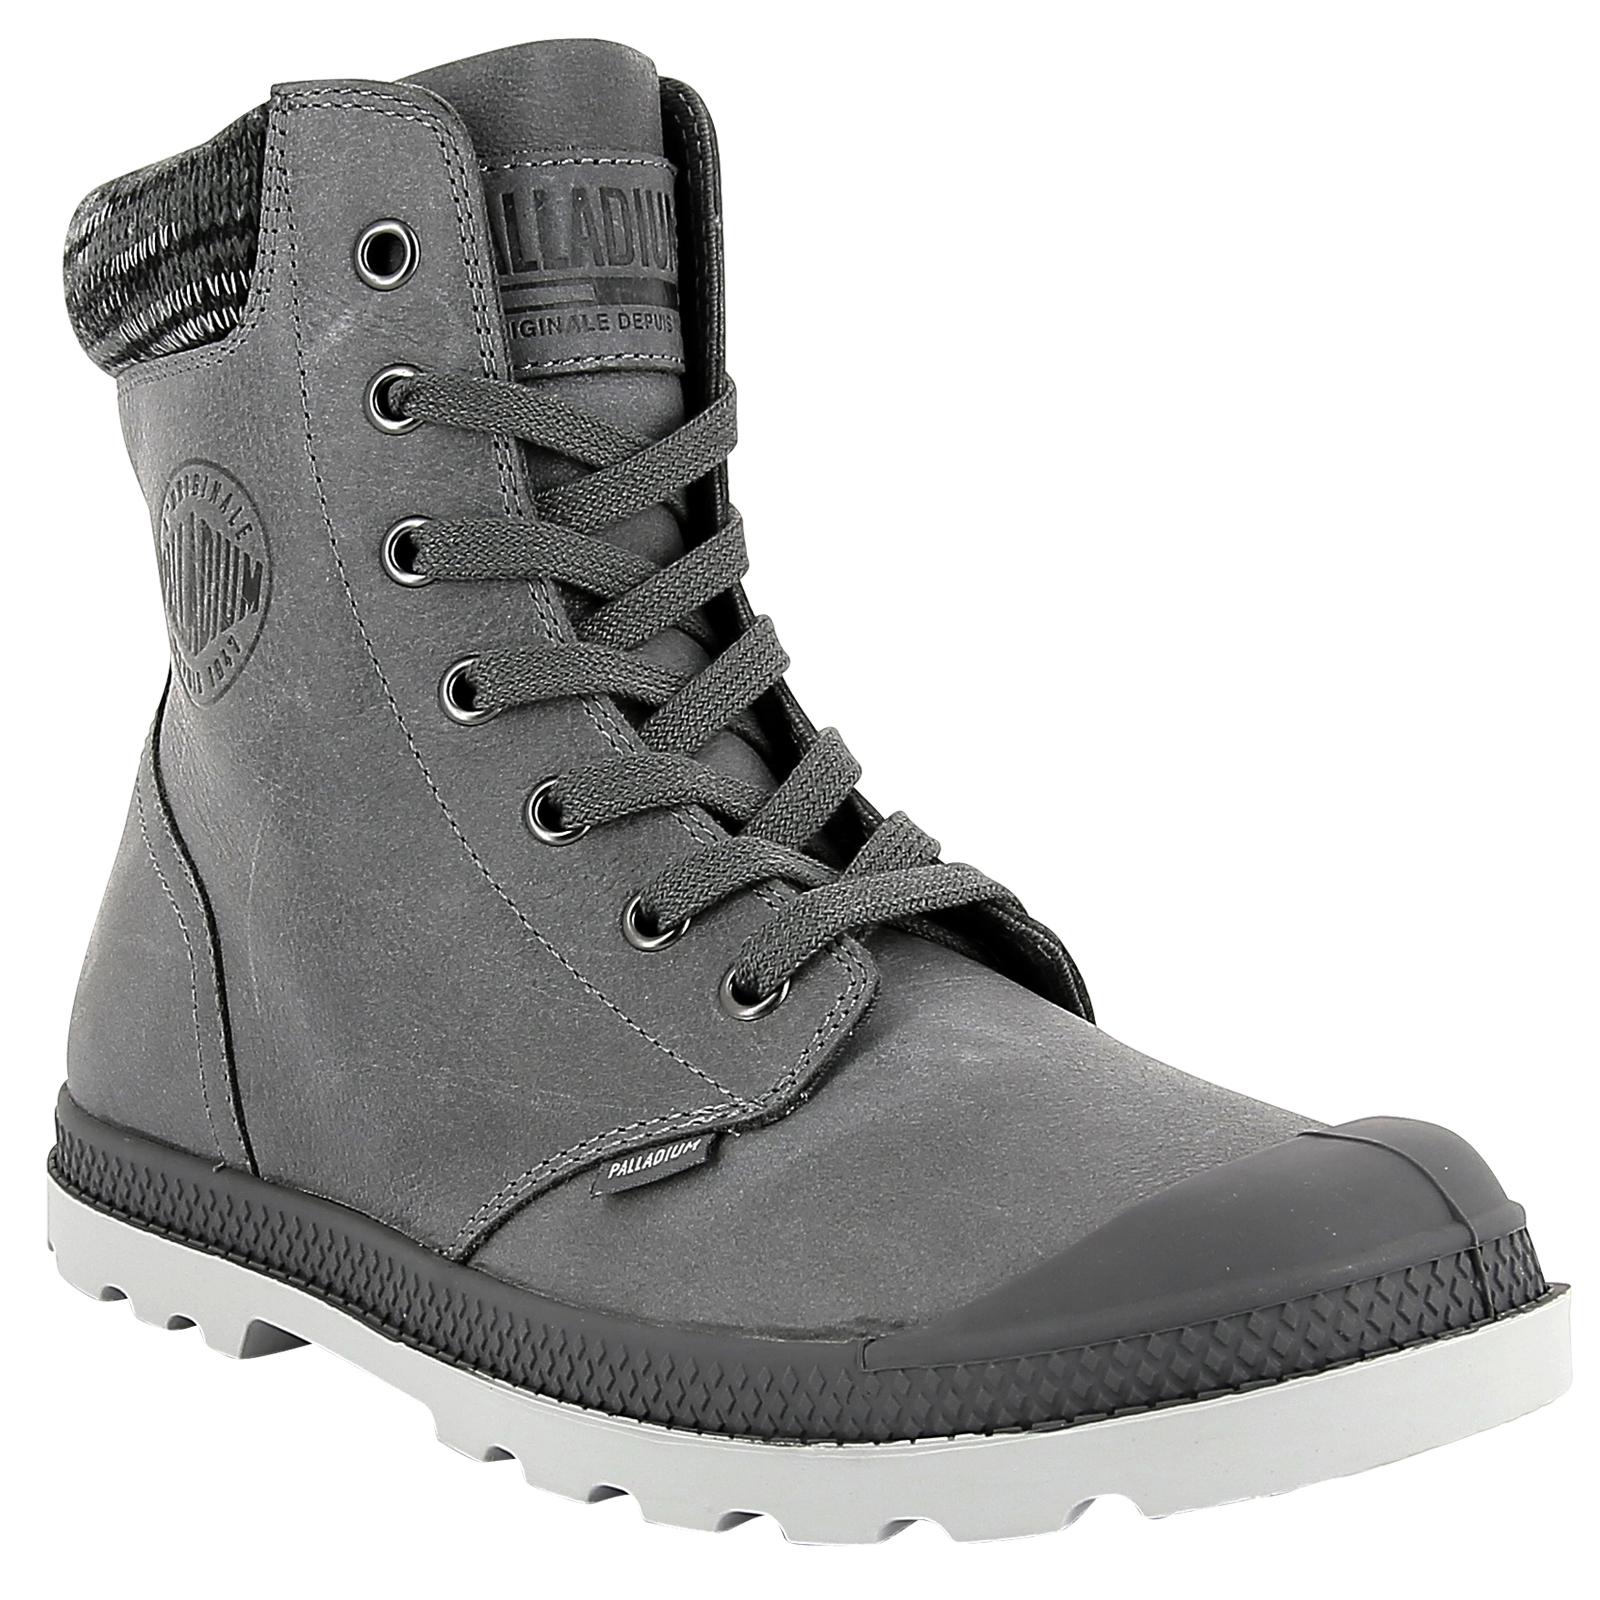 Palladium Womens Womens Womens Pampa Hi Knit Low Profile shoes Leather Casual Design Ankle Boot 265dae